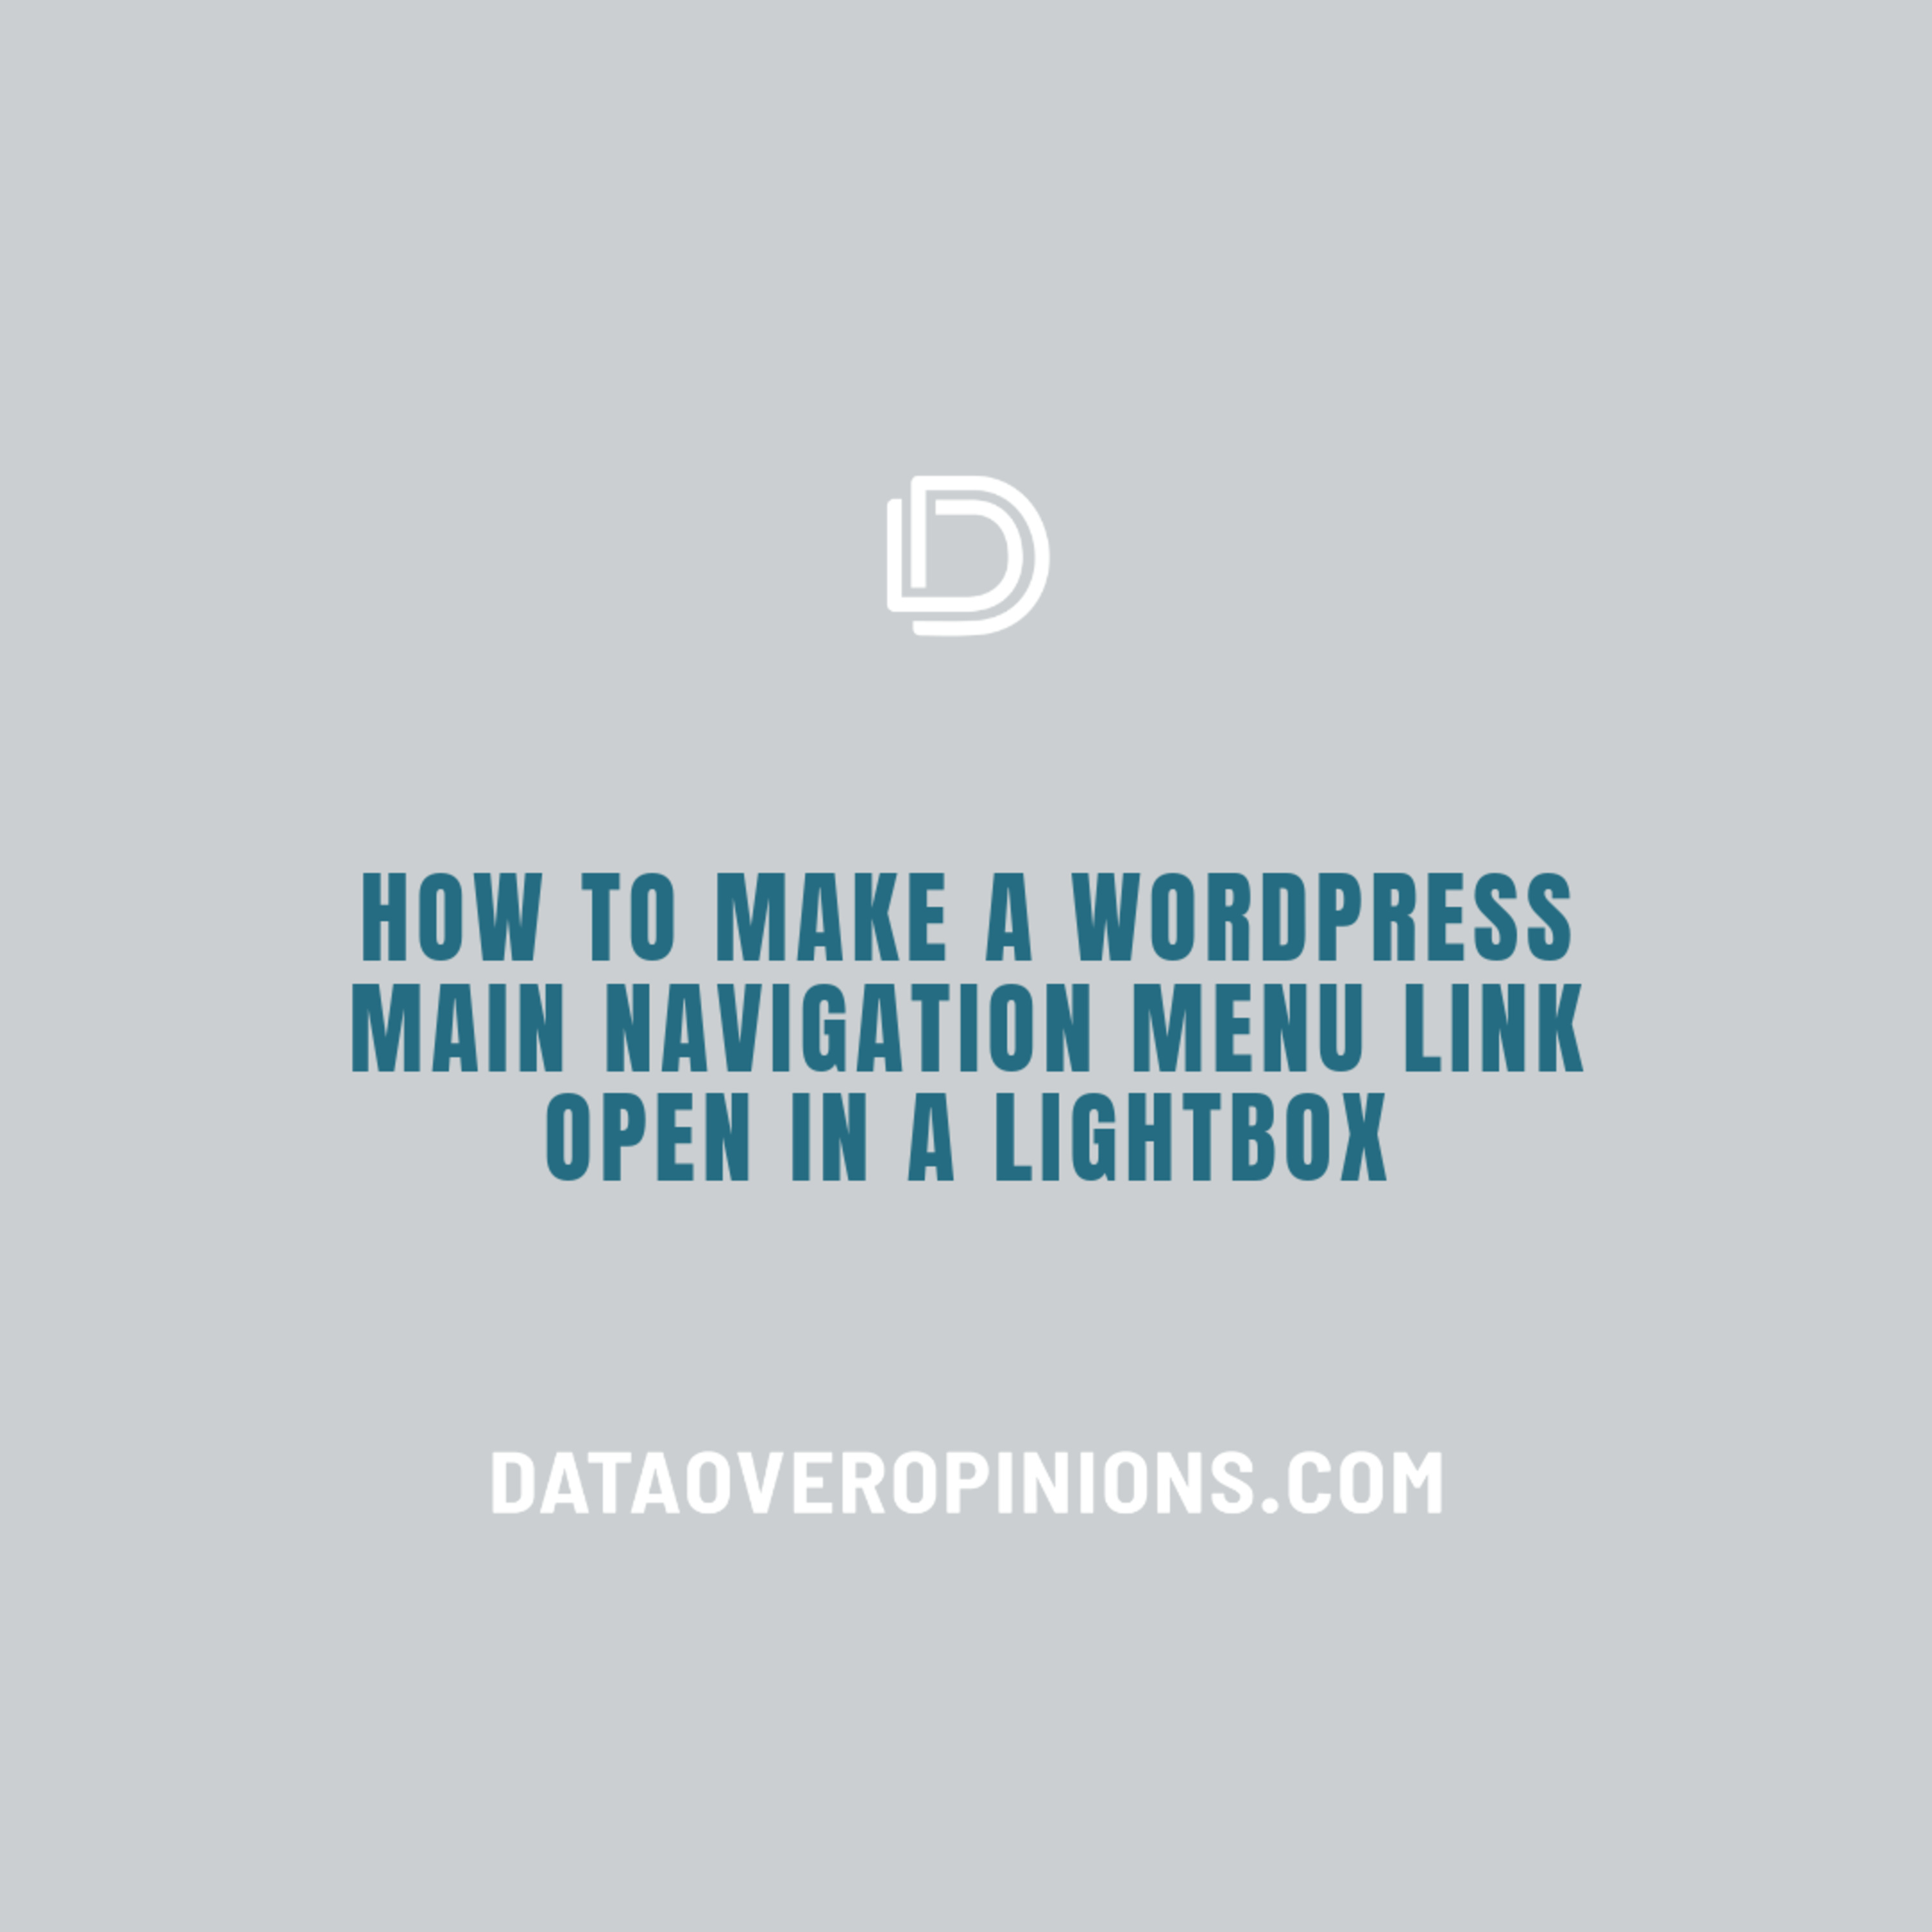 Episode 211: How To Make A WordPress Main Menu Navigation Link Open In A Lightbox - Data Driven Daily Tip 310